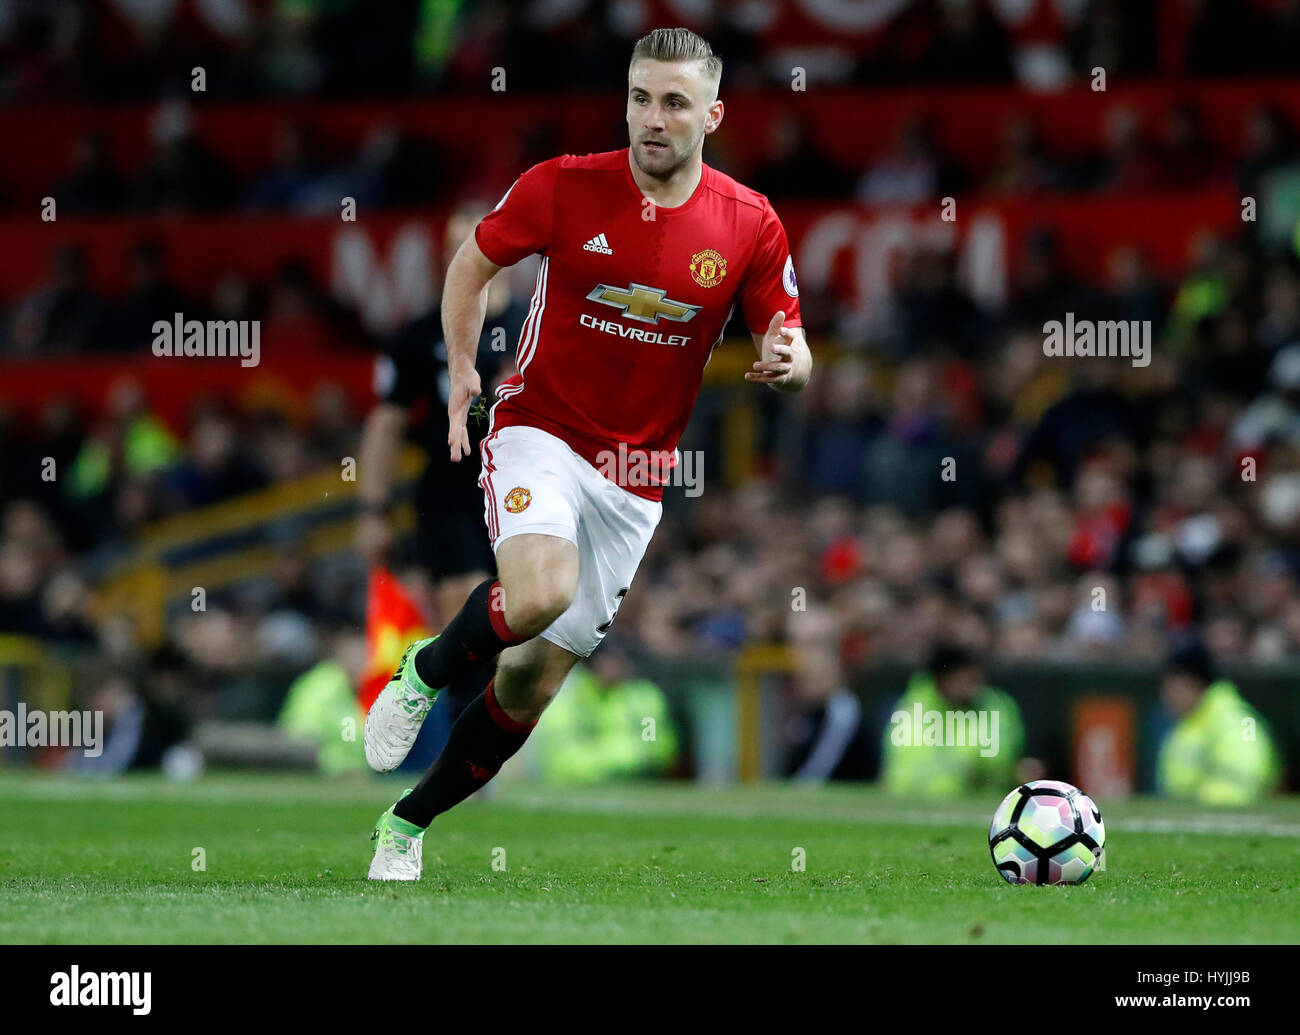 Manchester United s Luke Shaw during the Premier League match at